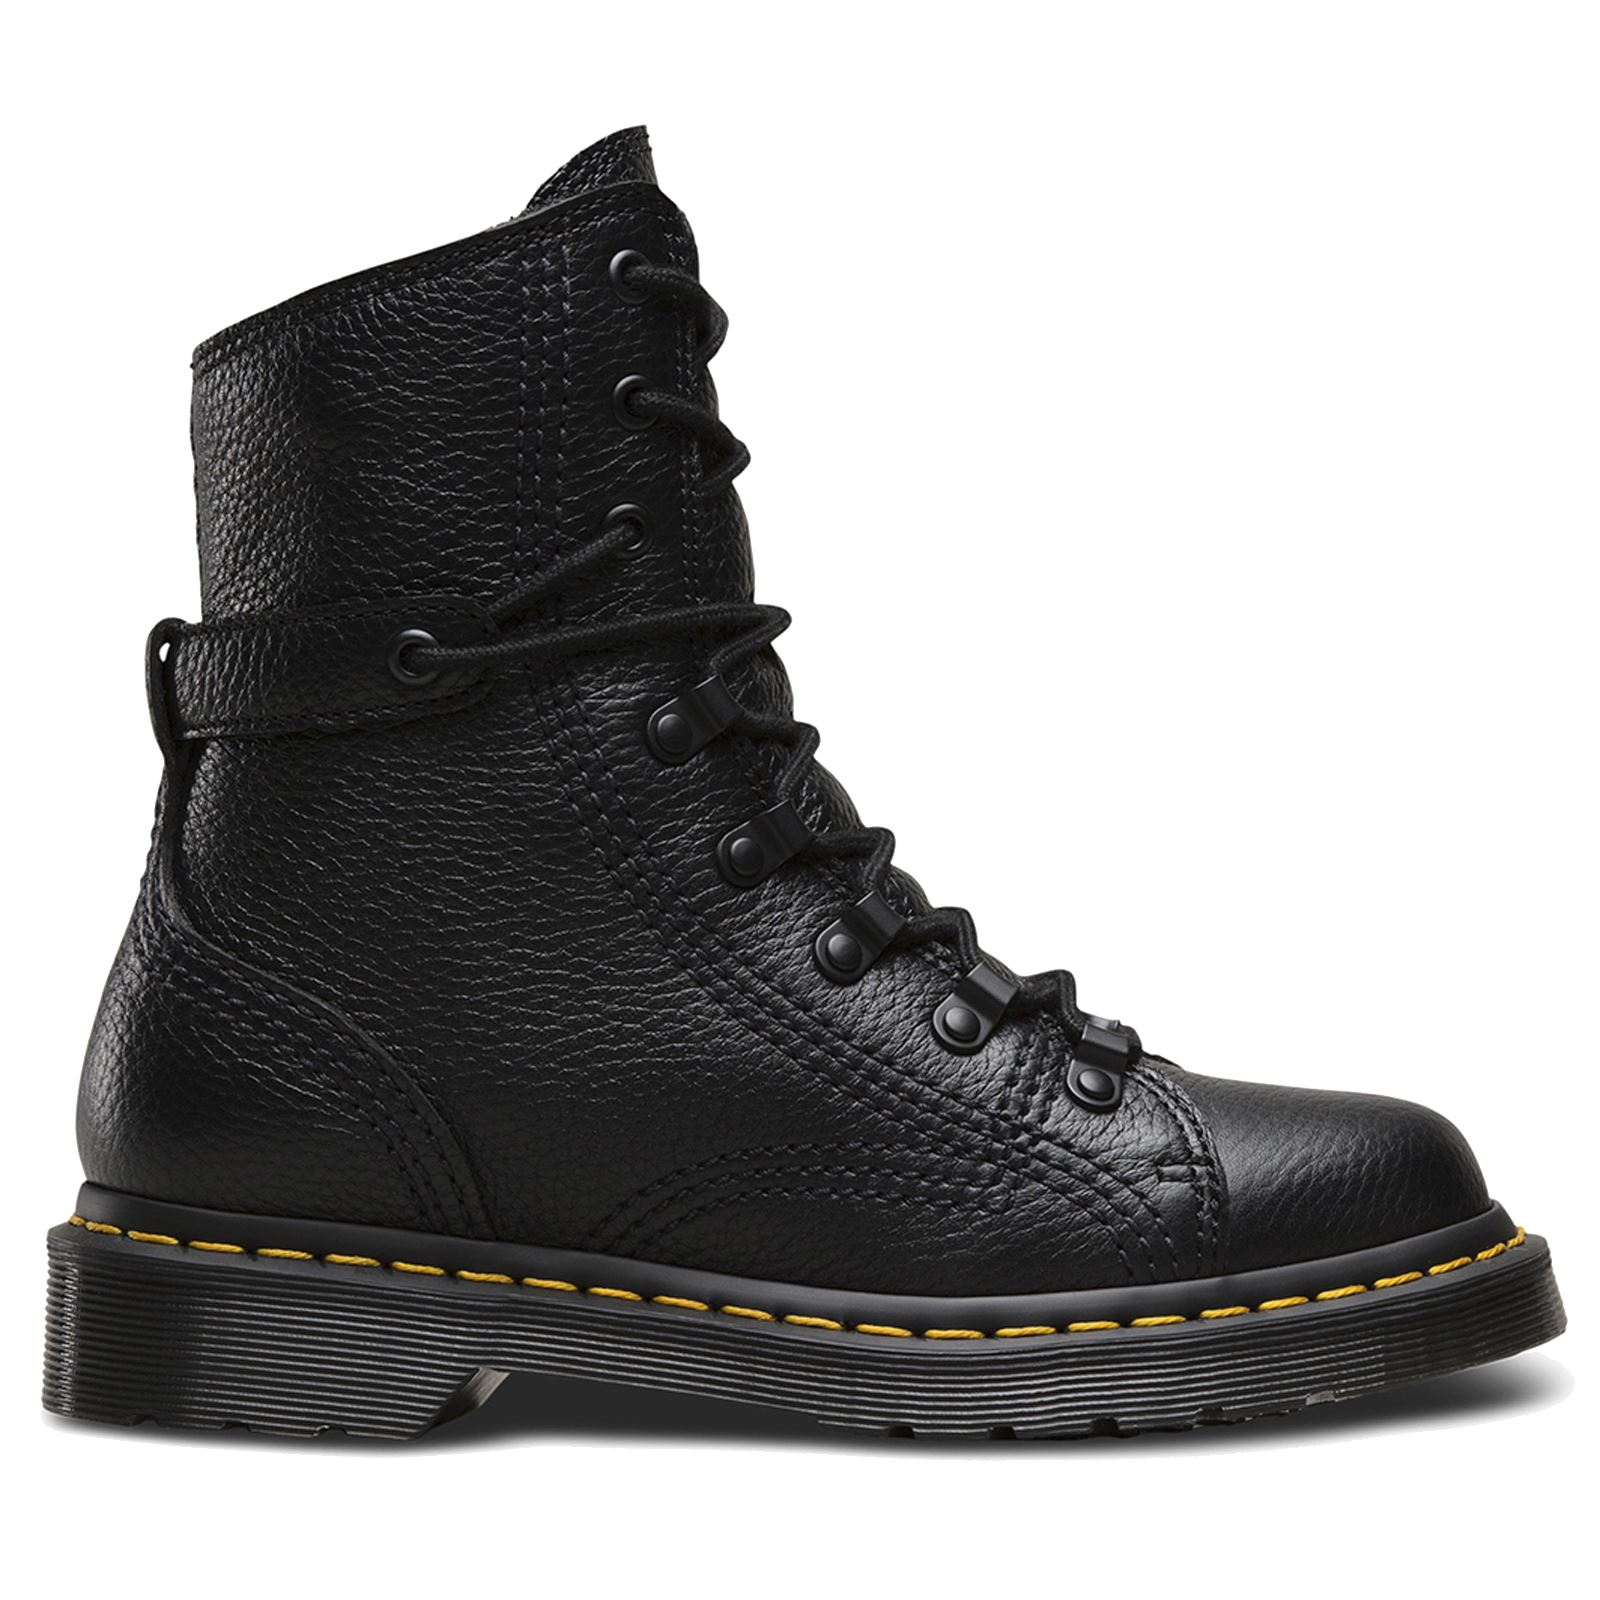 Dr.Martens Coraline Aunt Sally Black Womens Boots  dfb6f6ed3d2